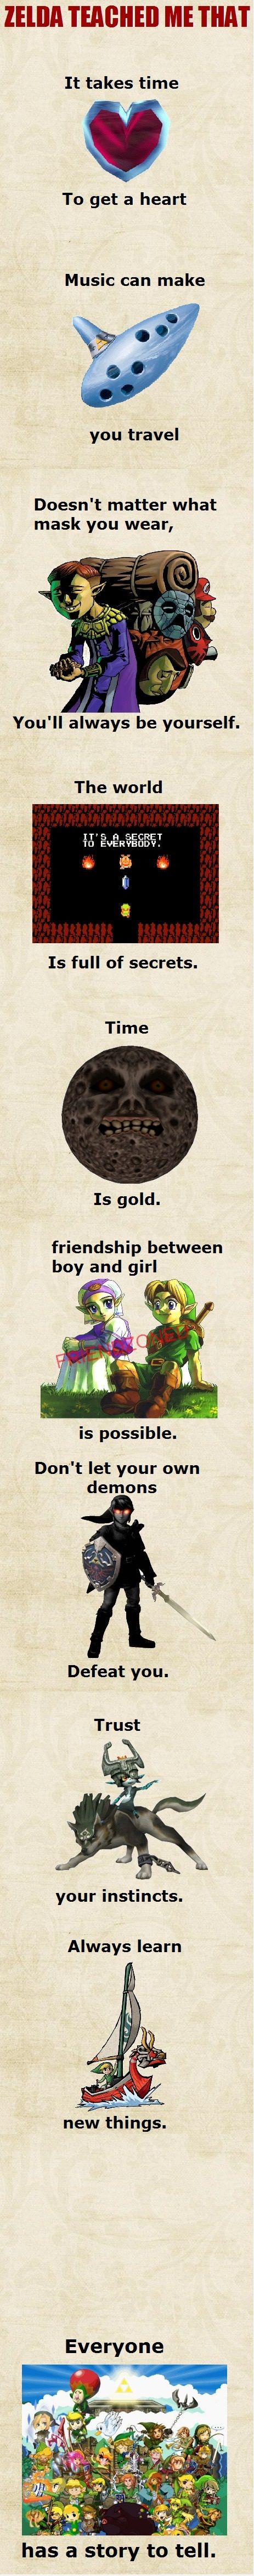 What The Legend of Zelda taught me..even though the title says it teached me lol